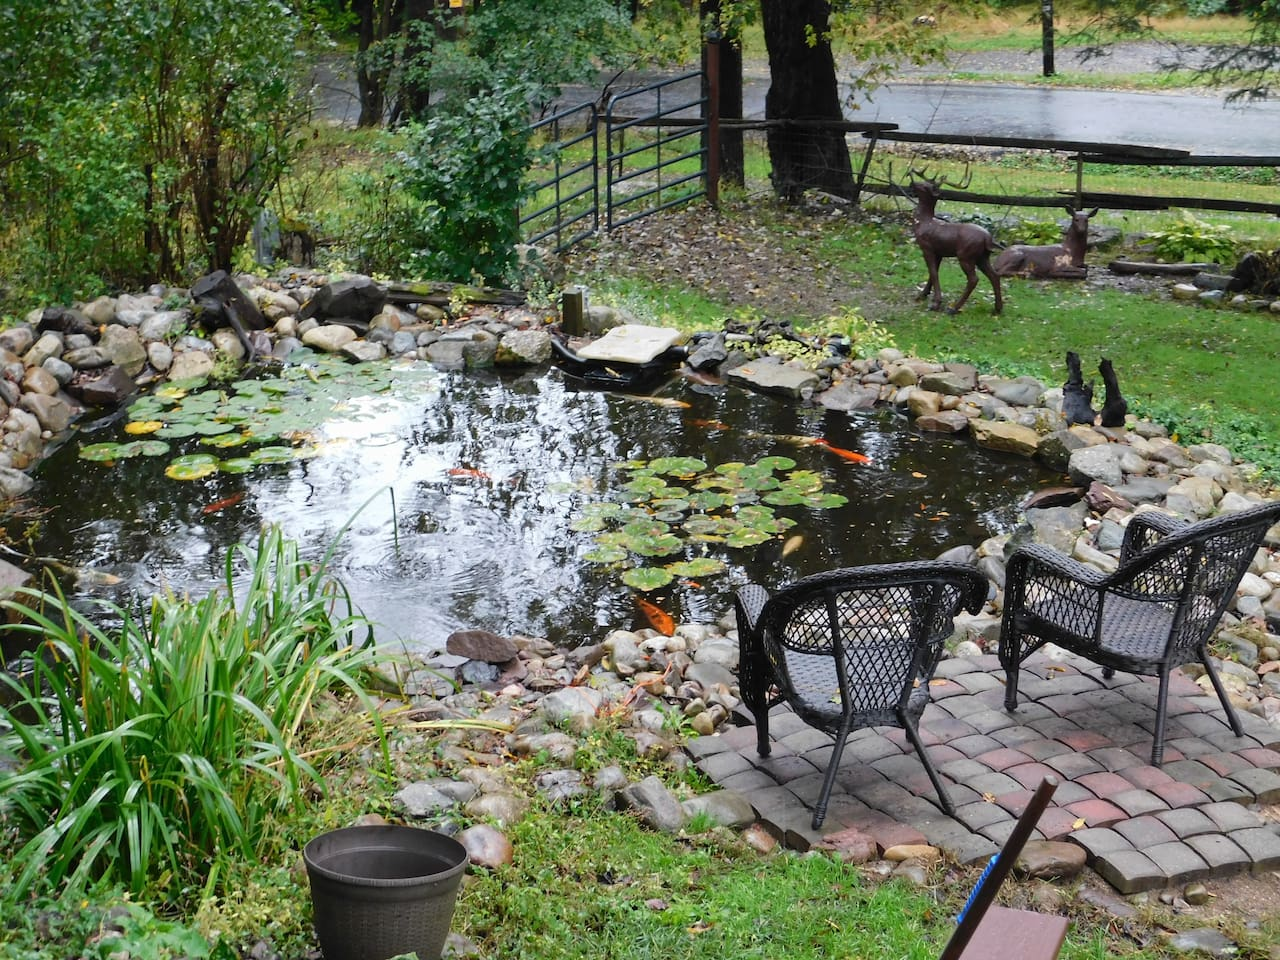 Relax by the Koi  pond and feed the fish!